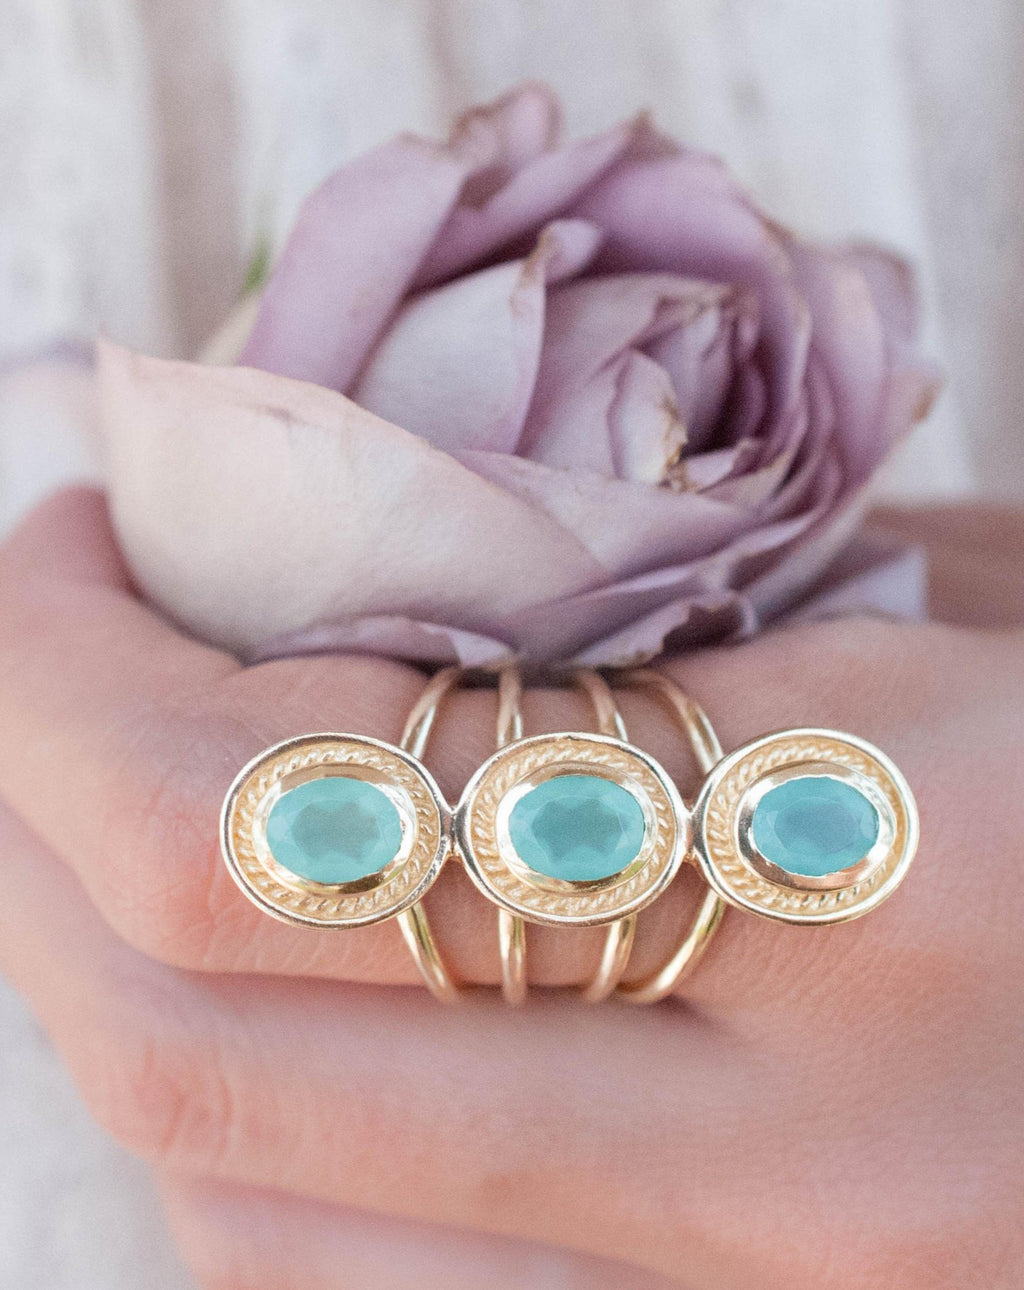 SALE Aqua Chalcedony Ring * Boho * Gemstone * Handmade * Bohemian* Gold Plated*Statement*November *December Birthstone *Gypsy *Bycila BJR091